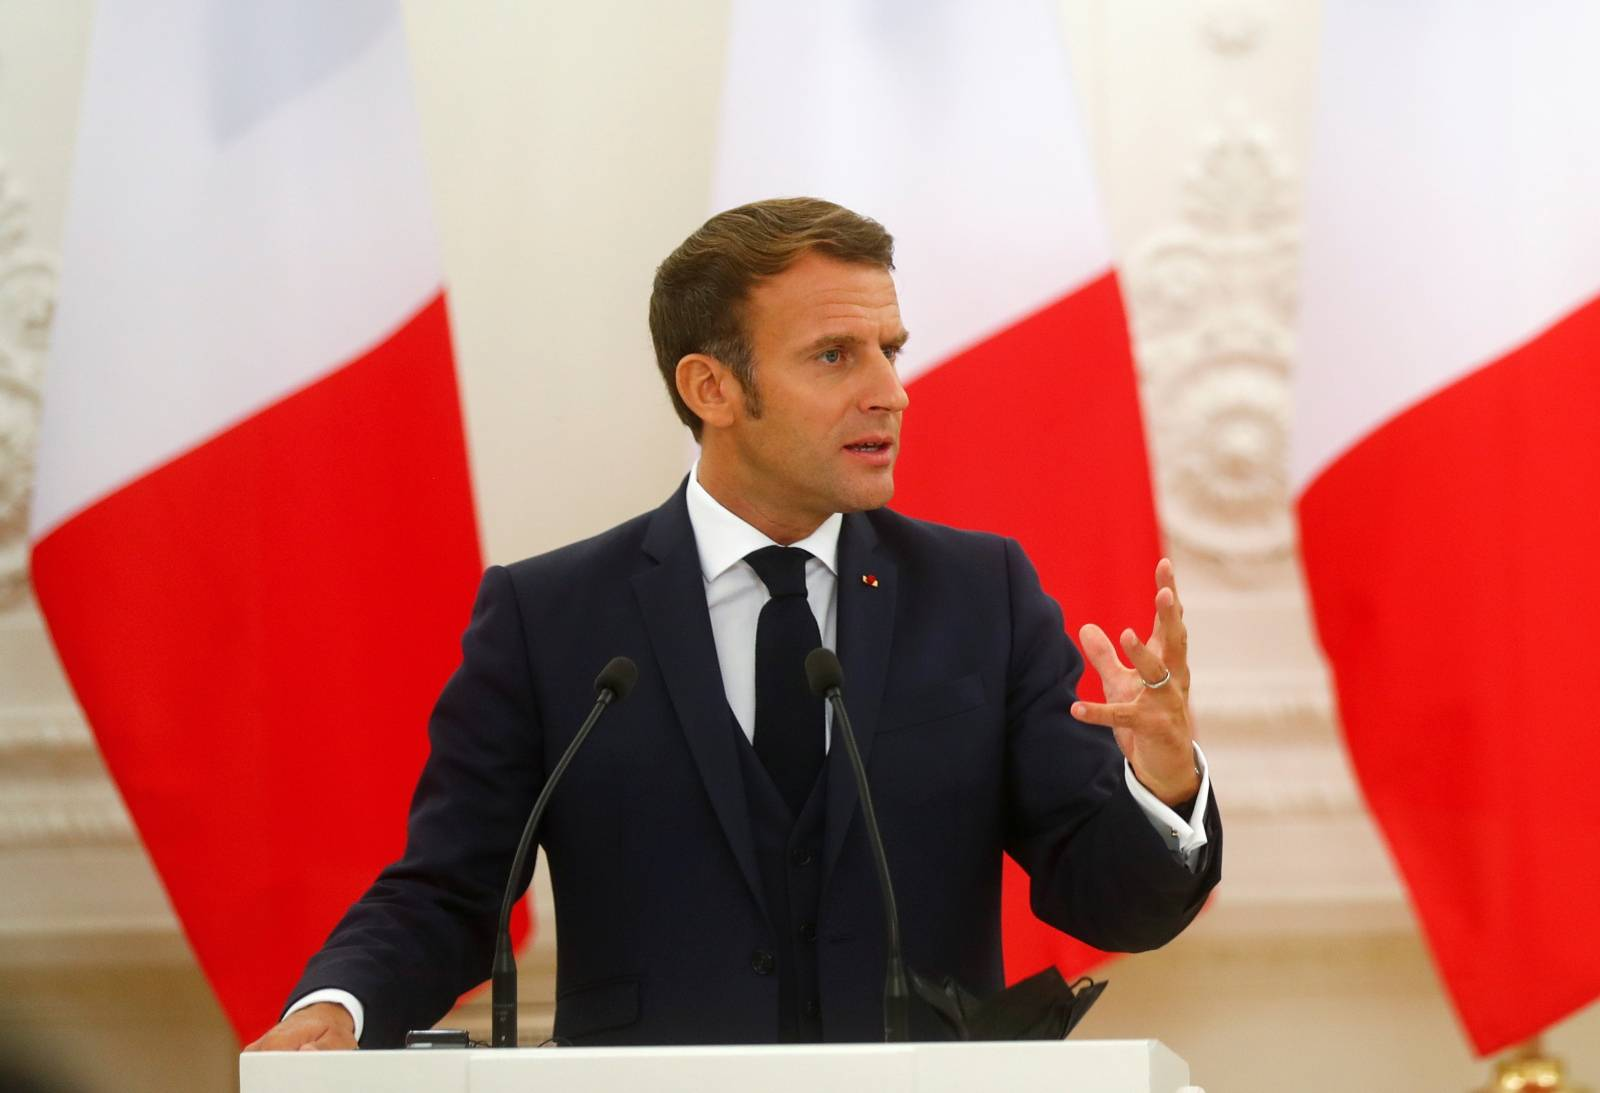 French President Emmanuel Macron visits Lithuania